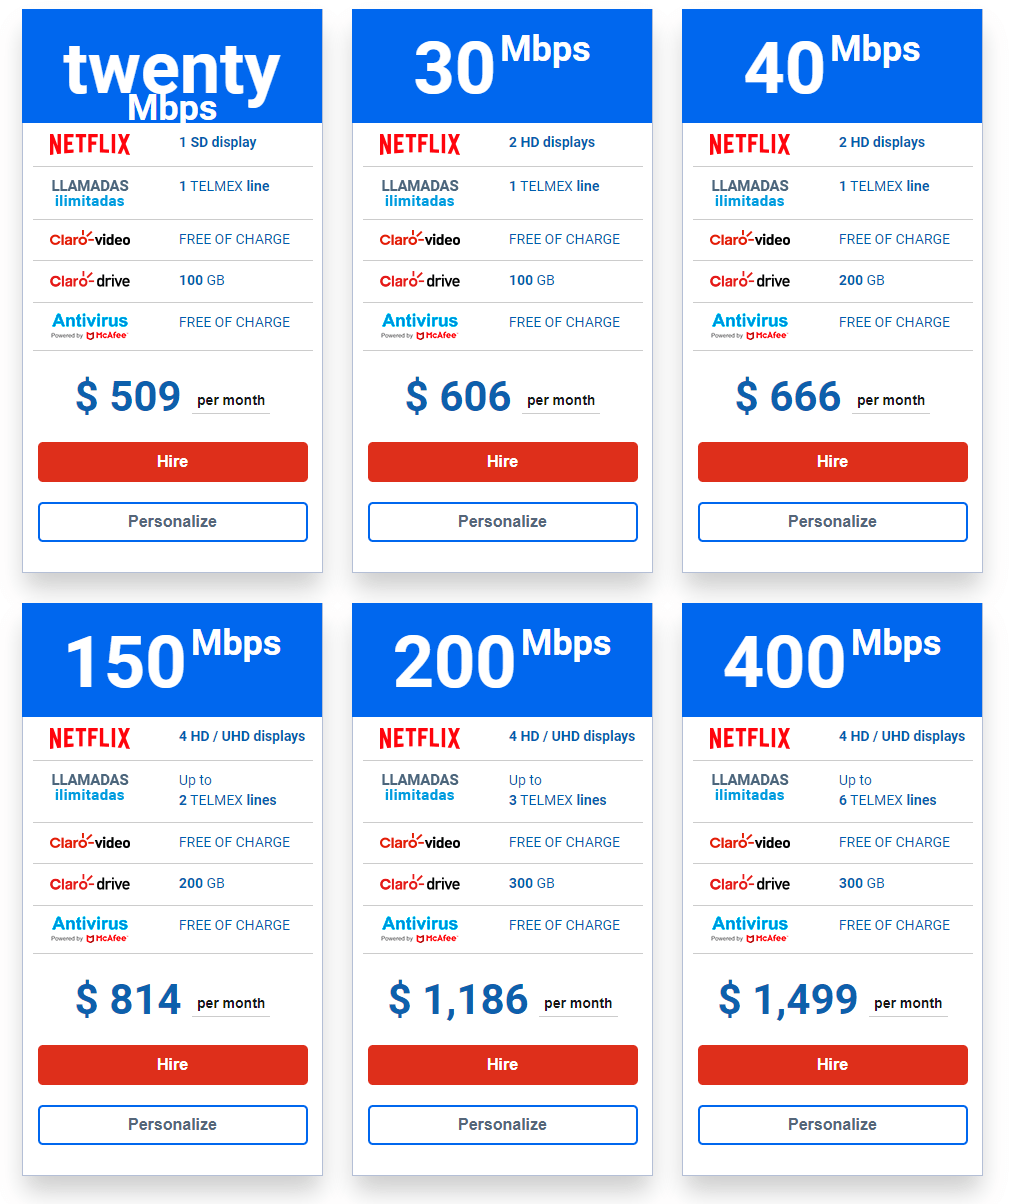 Telmex Packages With Netflix